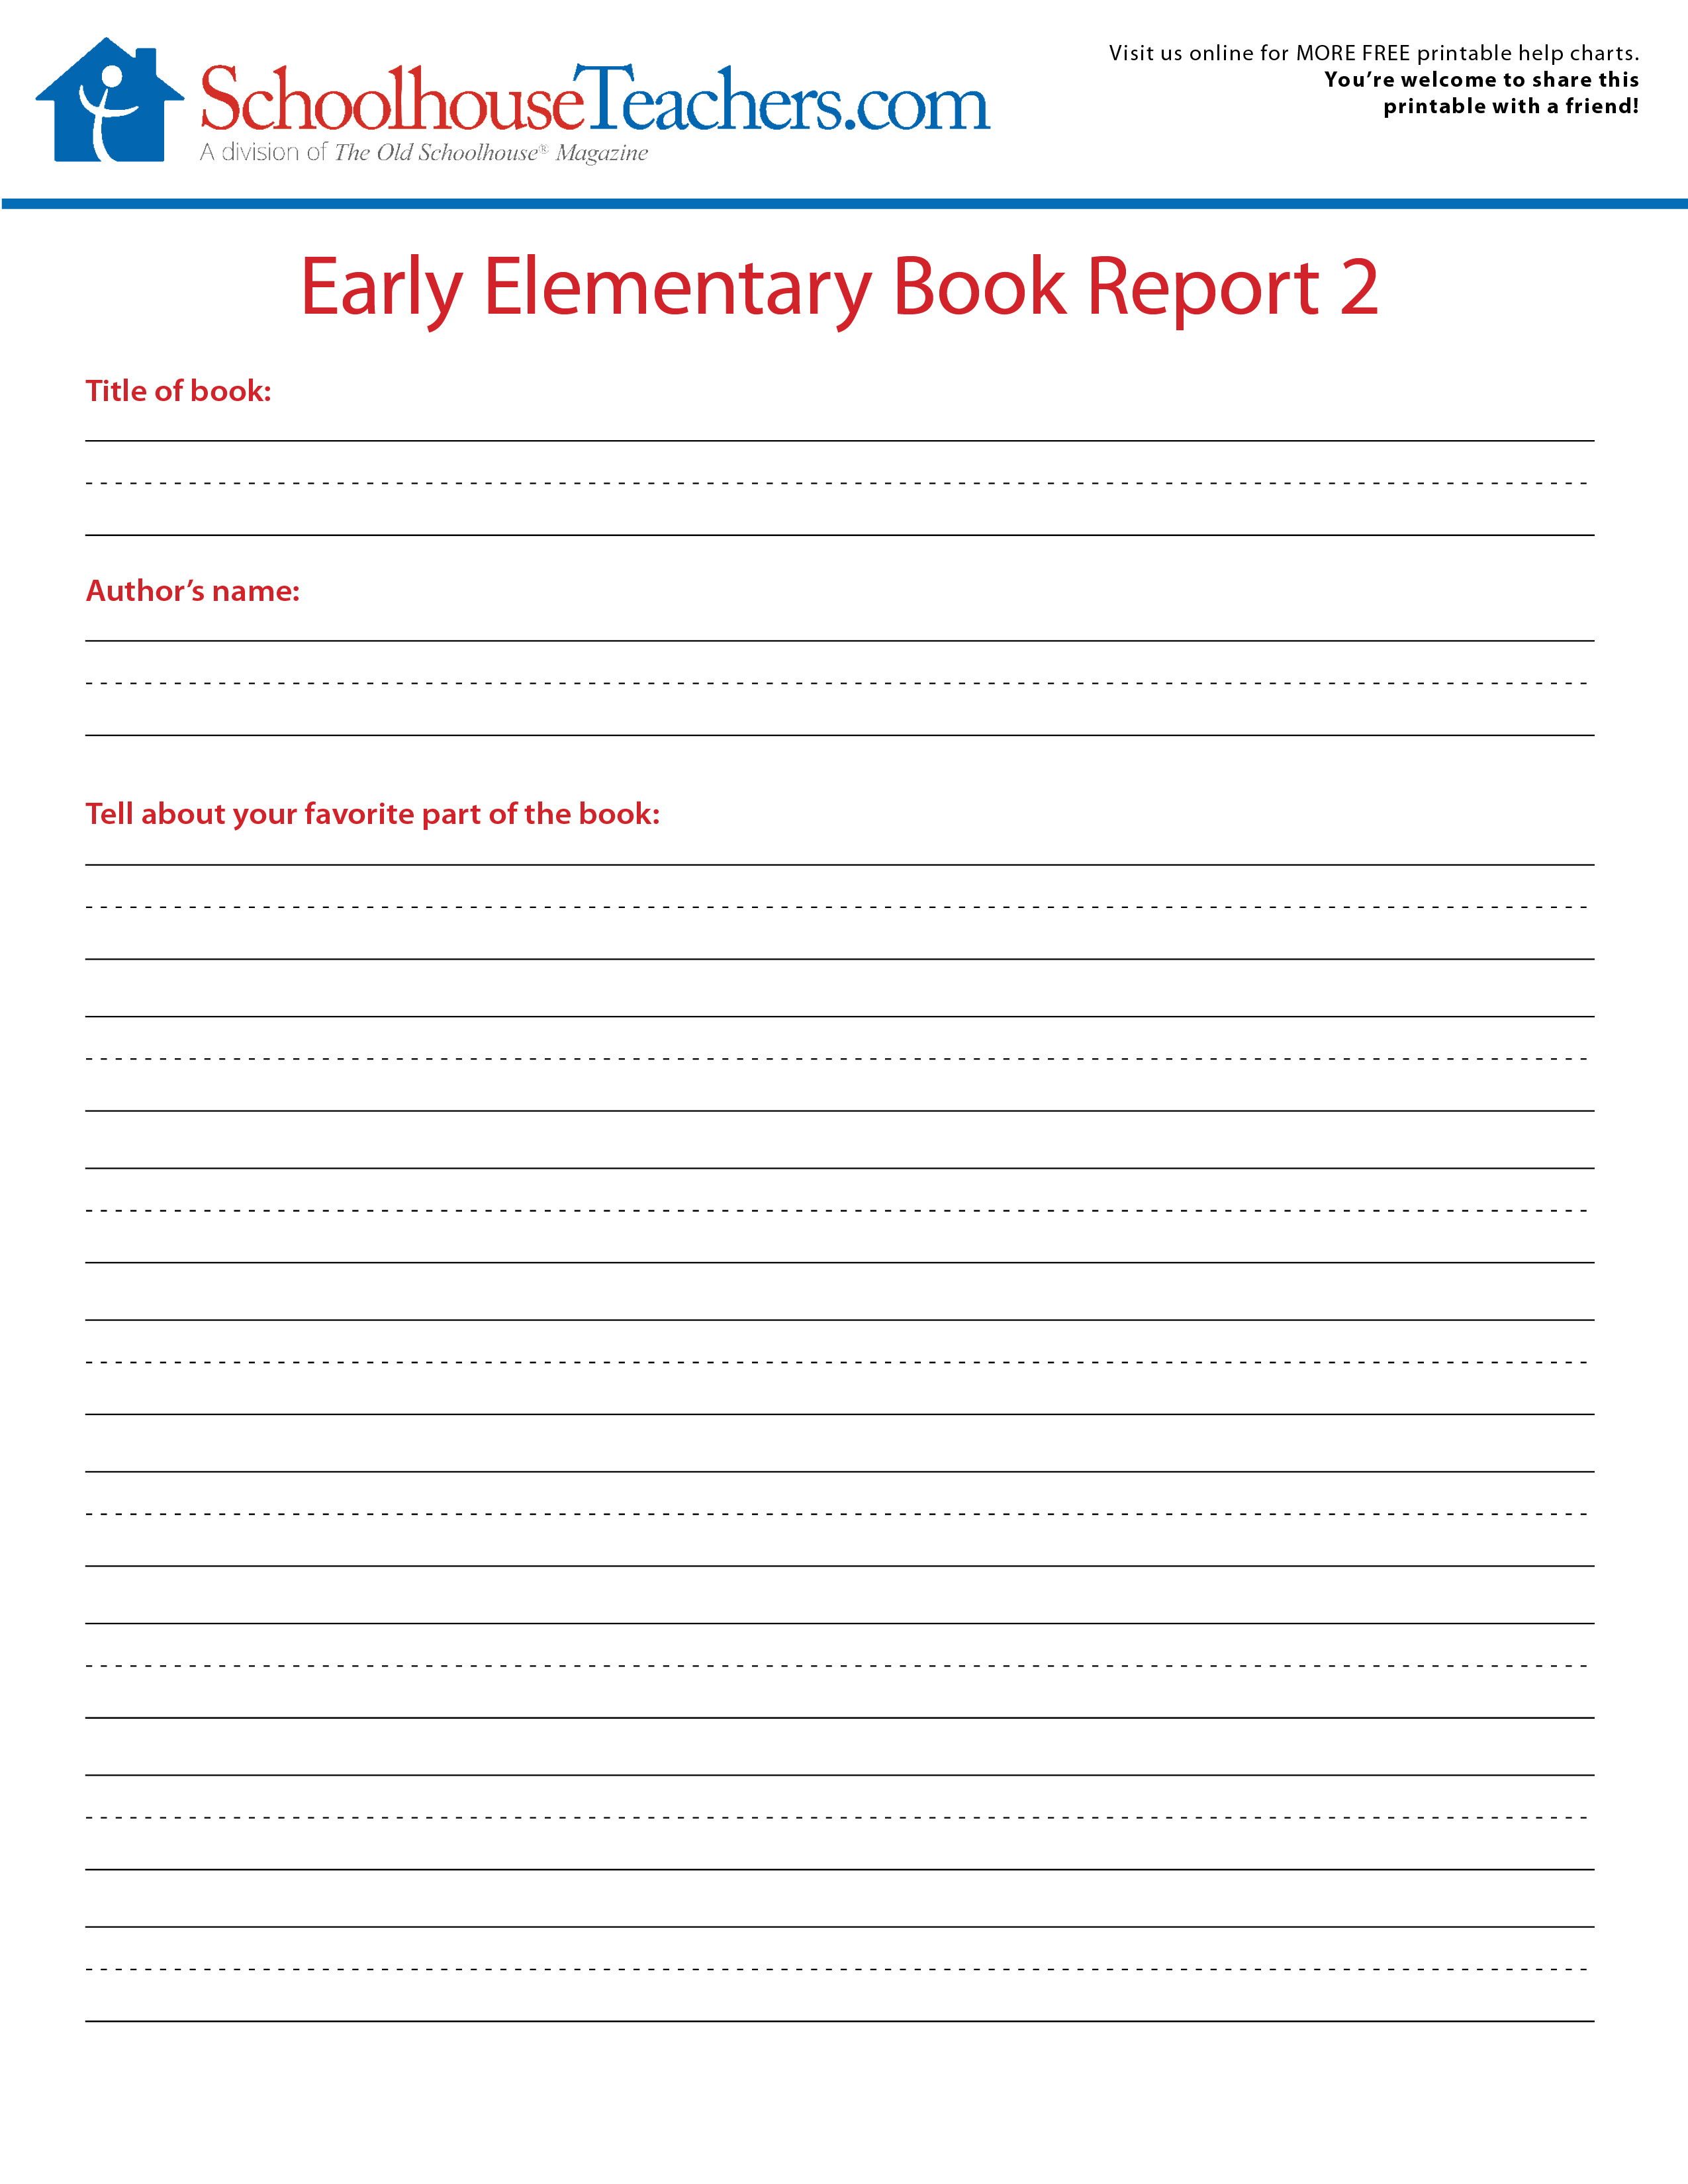 2 FREE Elementary school book report print-out forms (+more freebies!)